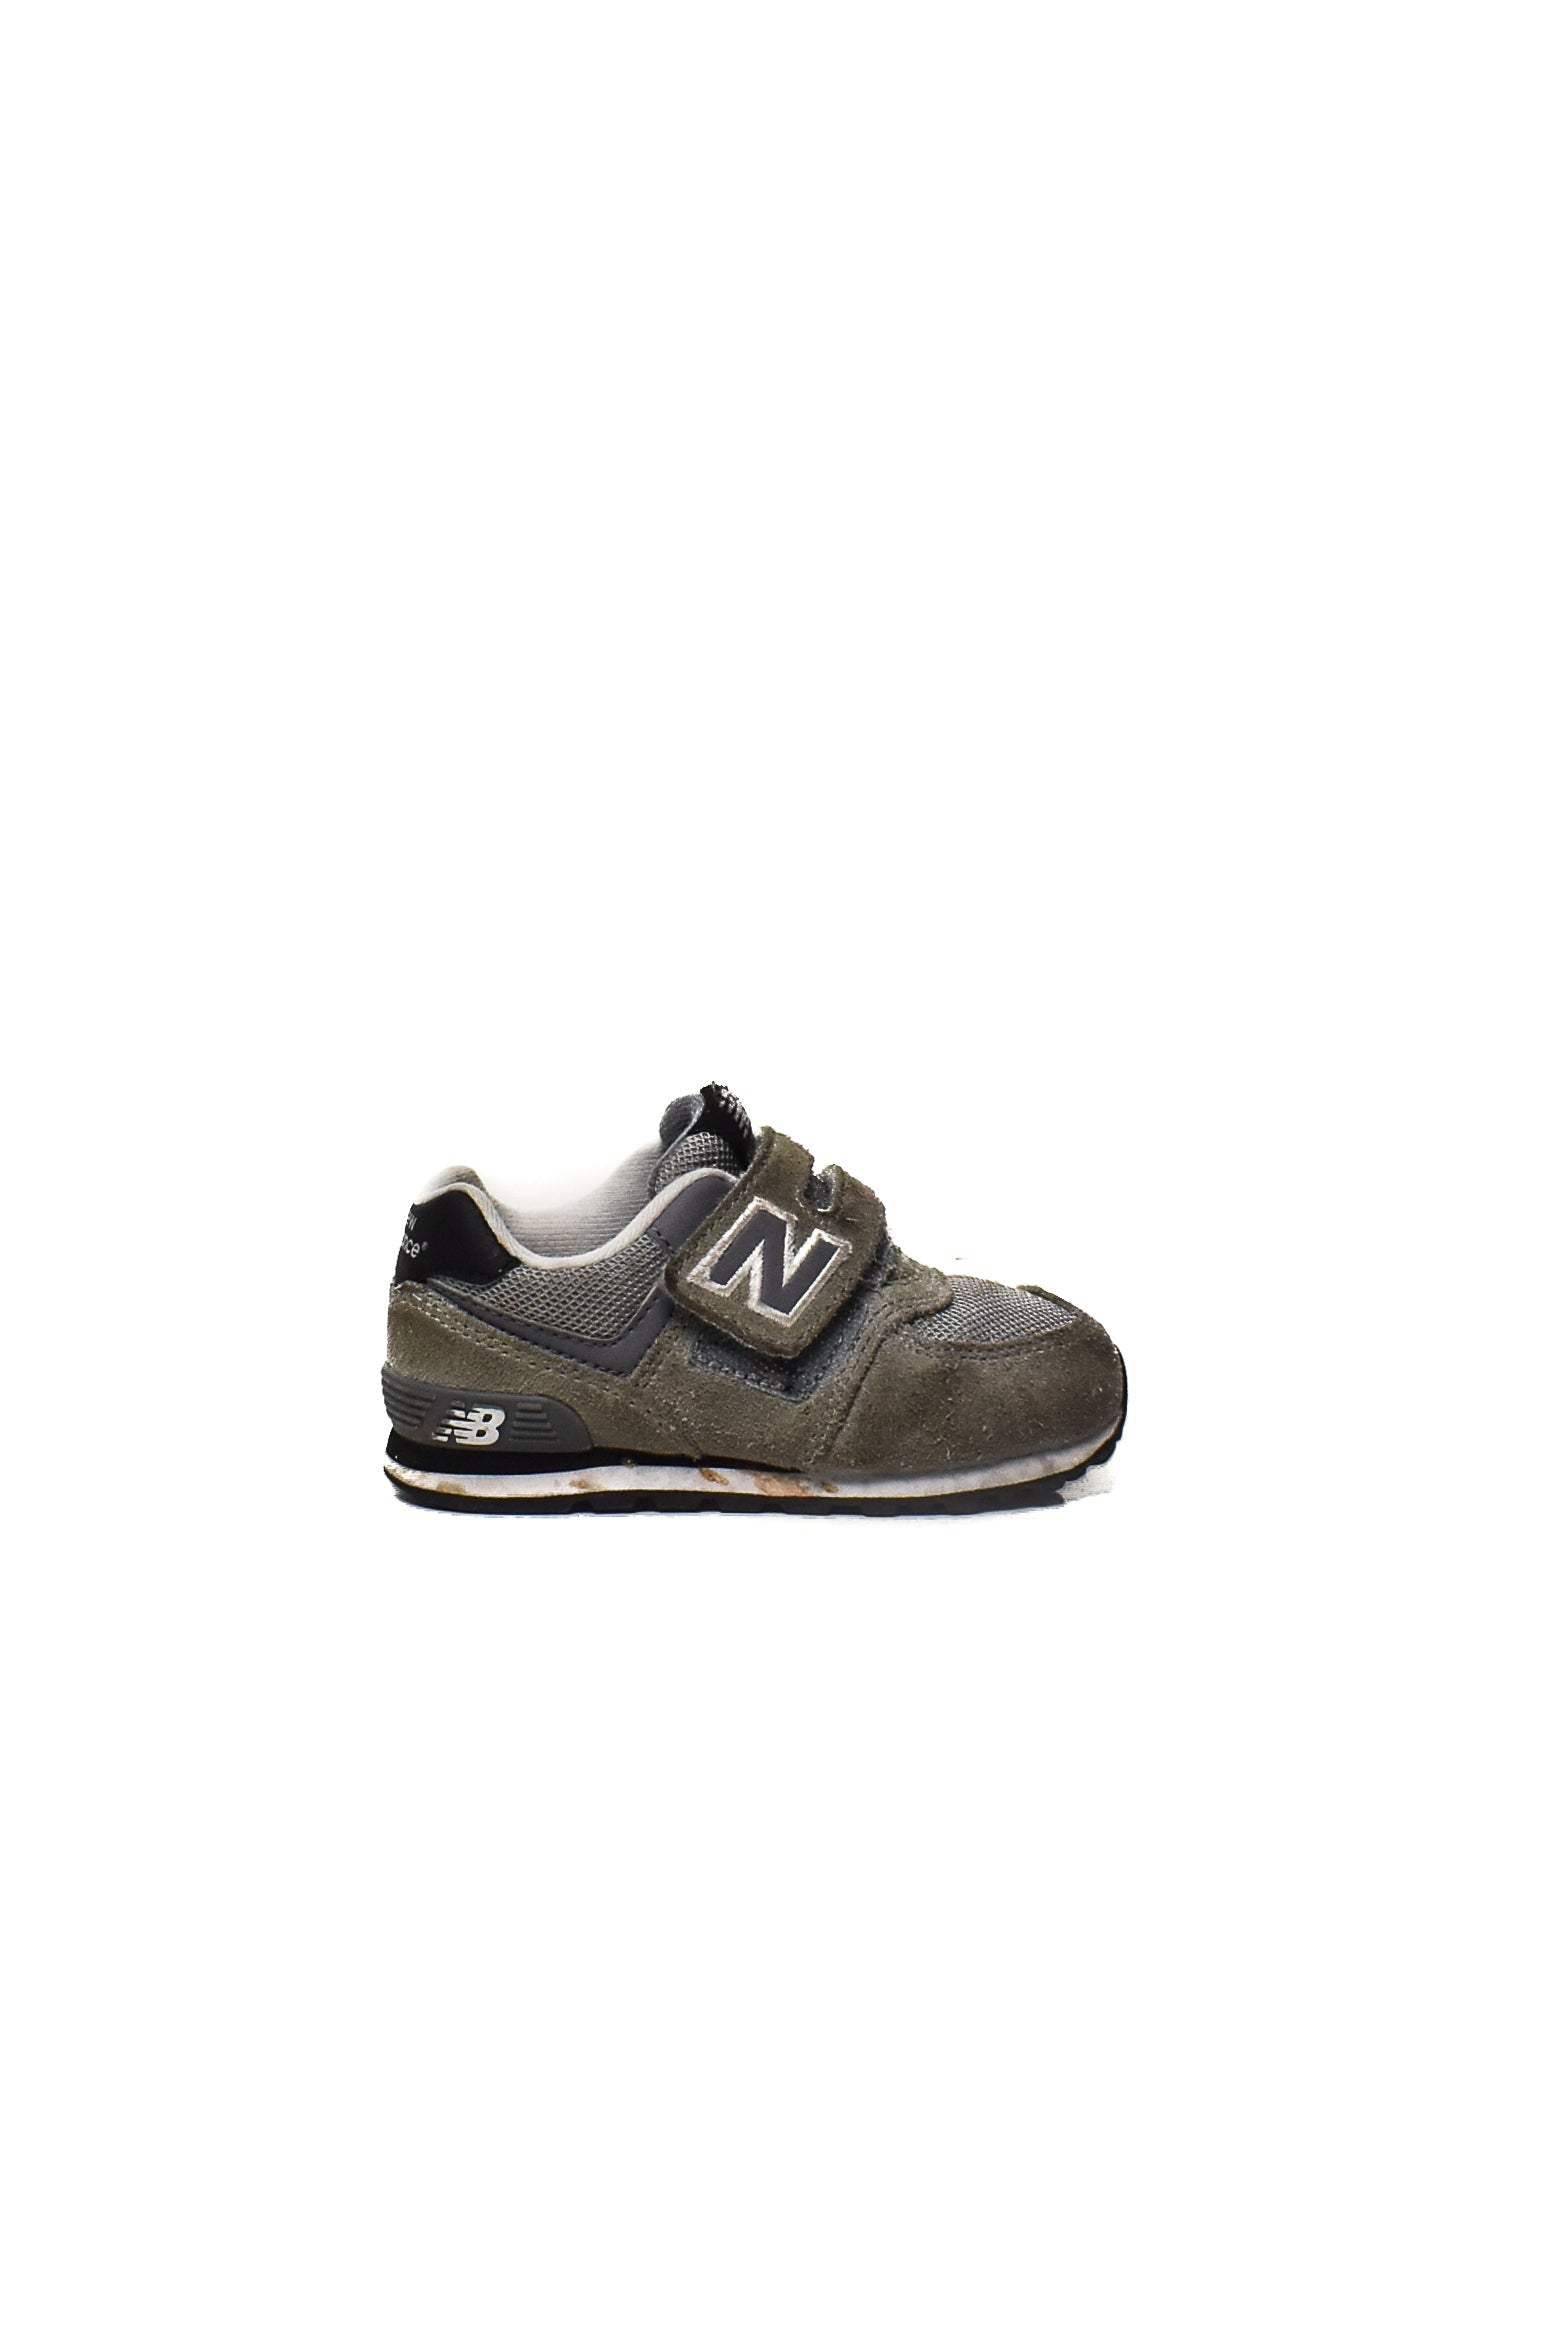 10006950 New Balance Kids~ Shoes EU 24 at Retykle